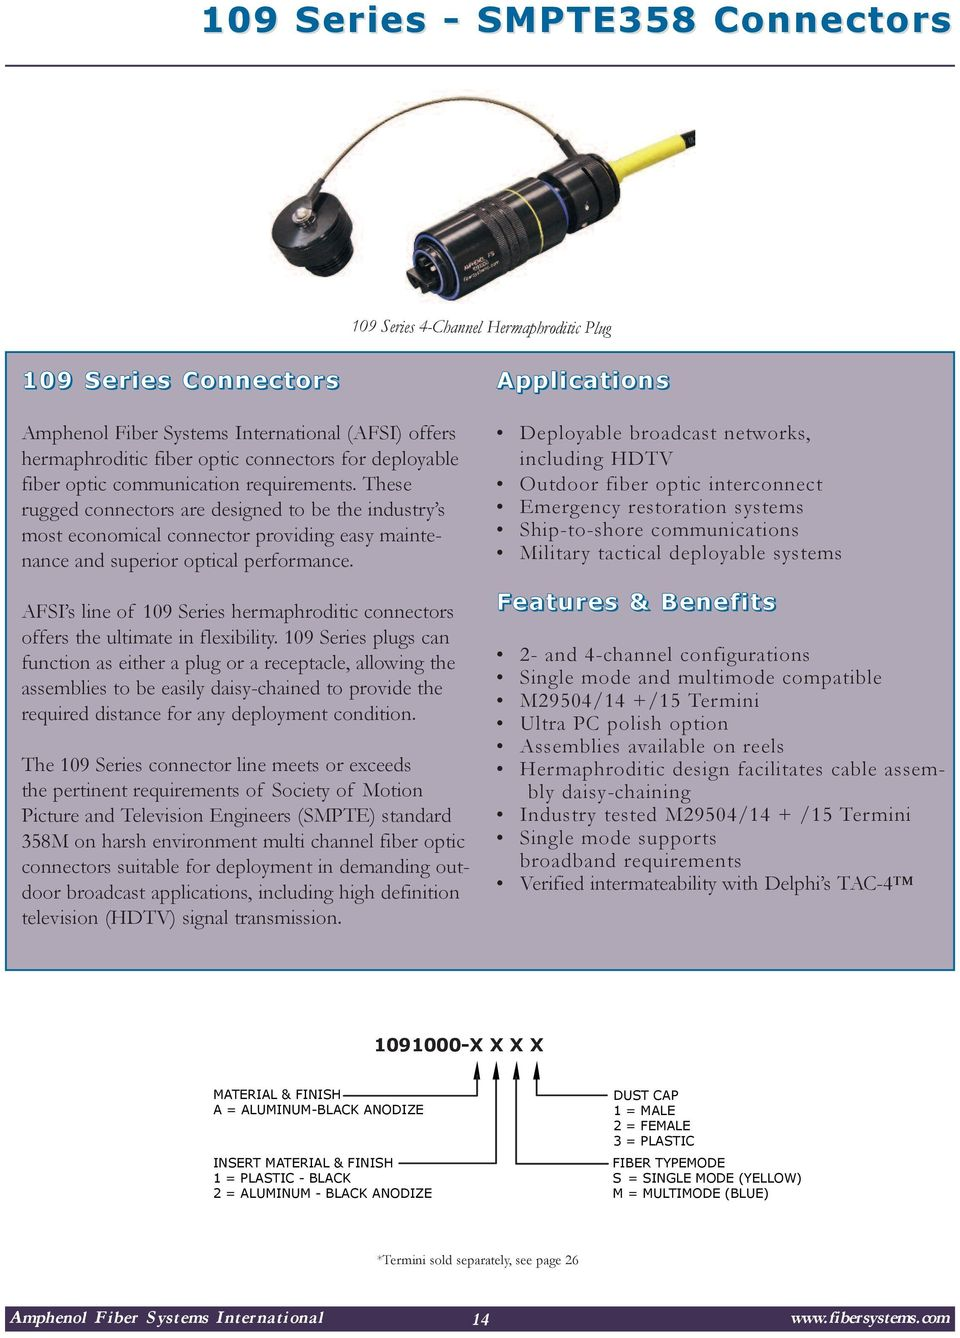 Amphenol Fiber Systems International Pdf Optics And Circuit Board Hd 00 10 Communications Afsi S Line Of 109 Series Hermaphroditic Connectors Offers The Ultimate In Flexibility